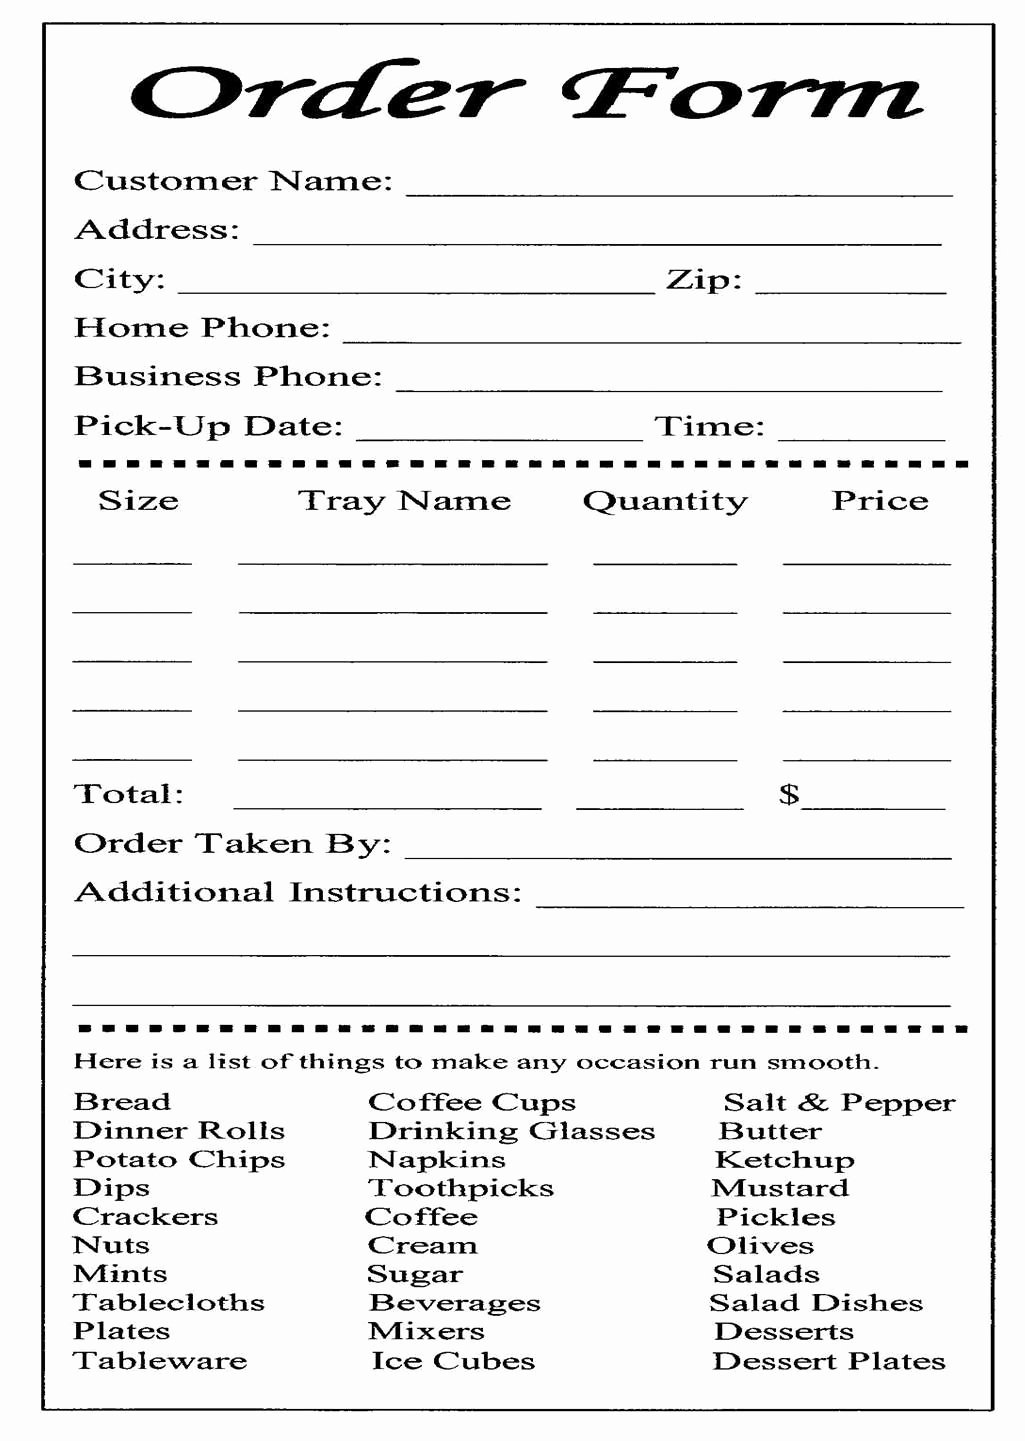 Catering order form Template Free Lovely Cake Ball order form Templates Free